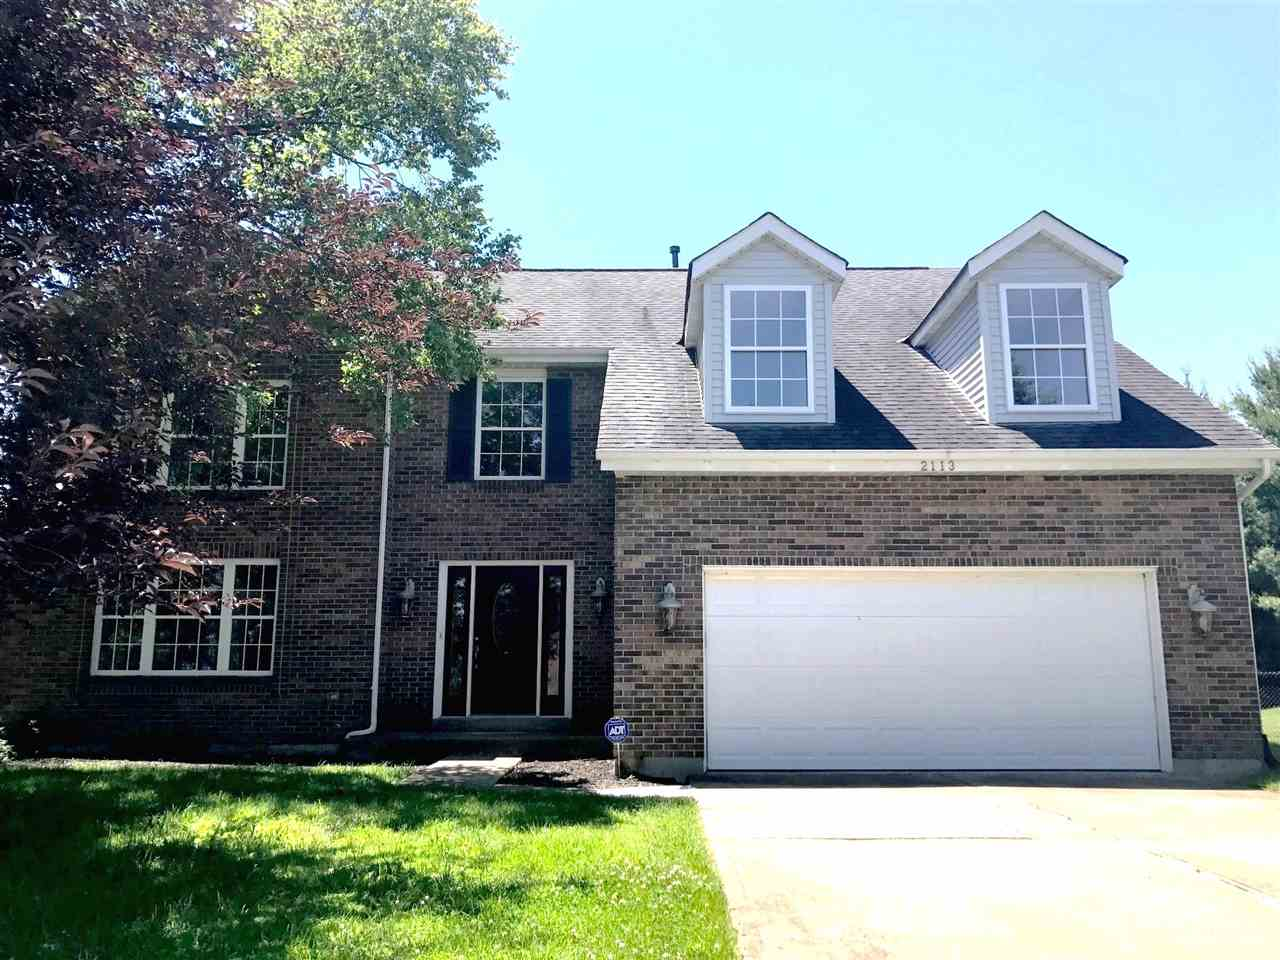 Photo 1 for 2113 Silverwood Ct. Florence, KY 41042